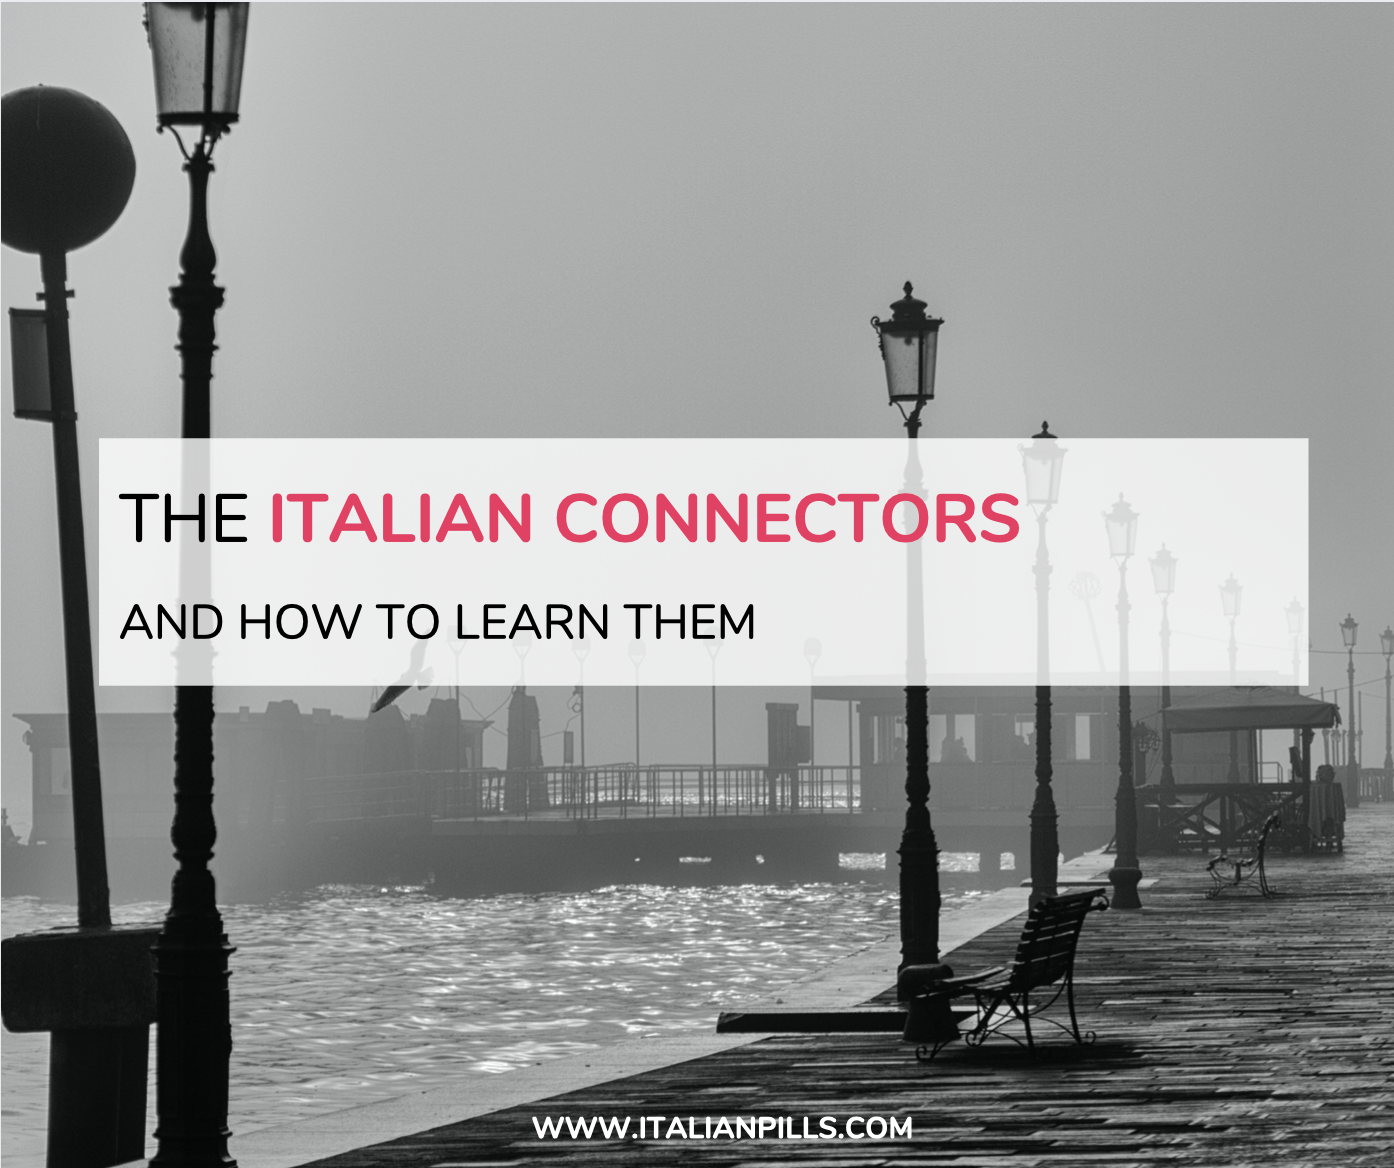 The Italian connectors: how to learn them